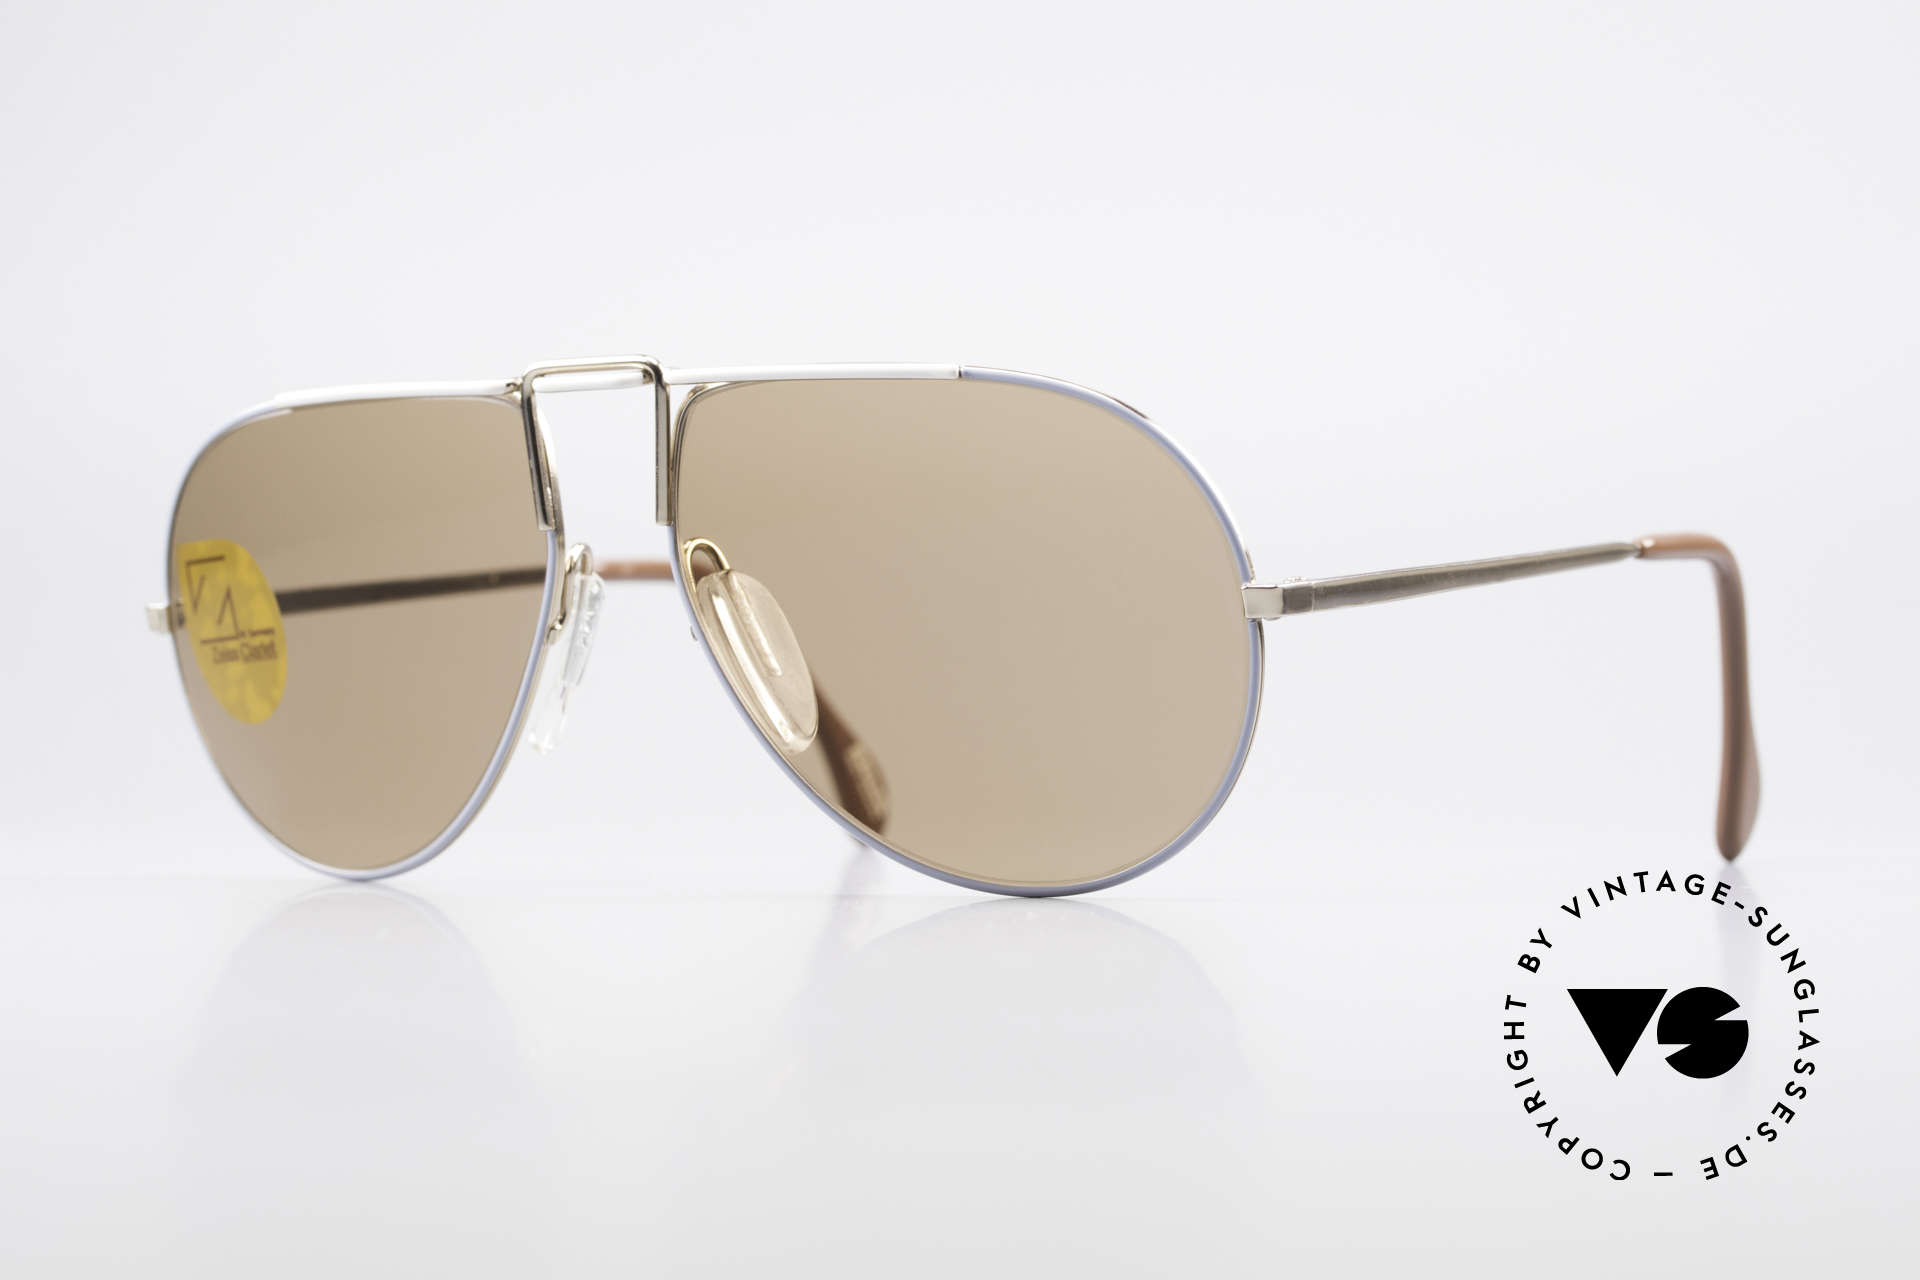 Zeiss 9357 Rare Aviator Sunglasses 80's, vintage Zeiss sunglasses from the early 1980's, Made for Men and Women